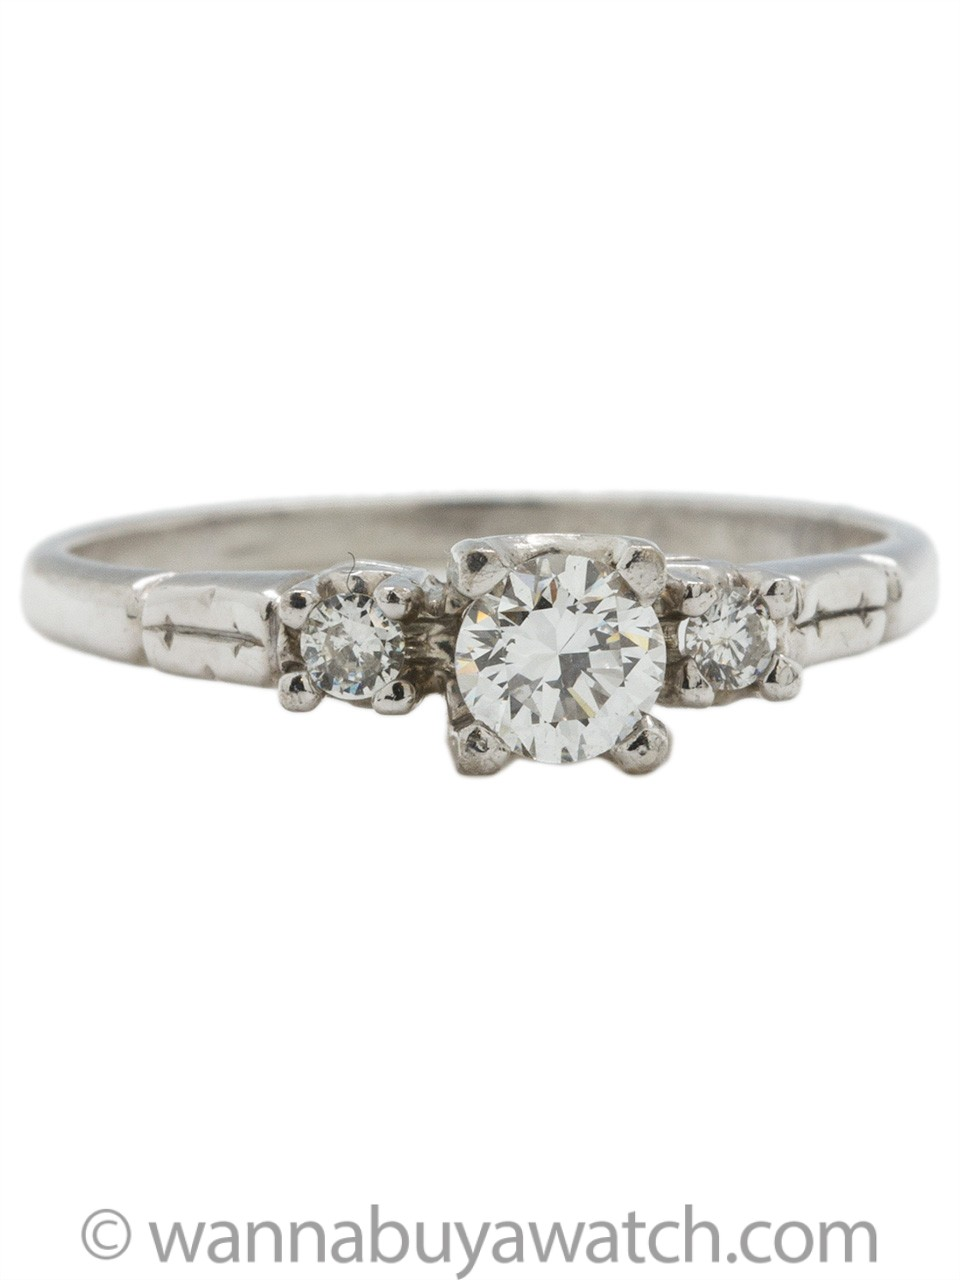 Classic Vintage Platinum Diamond Engagement Ring .28ct G-SI2 circa 1950s